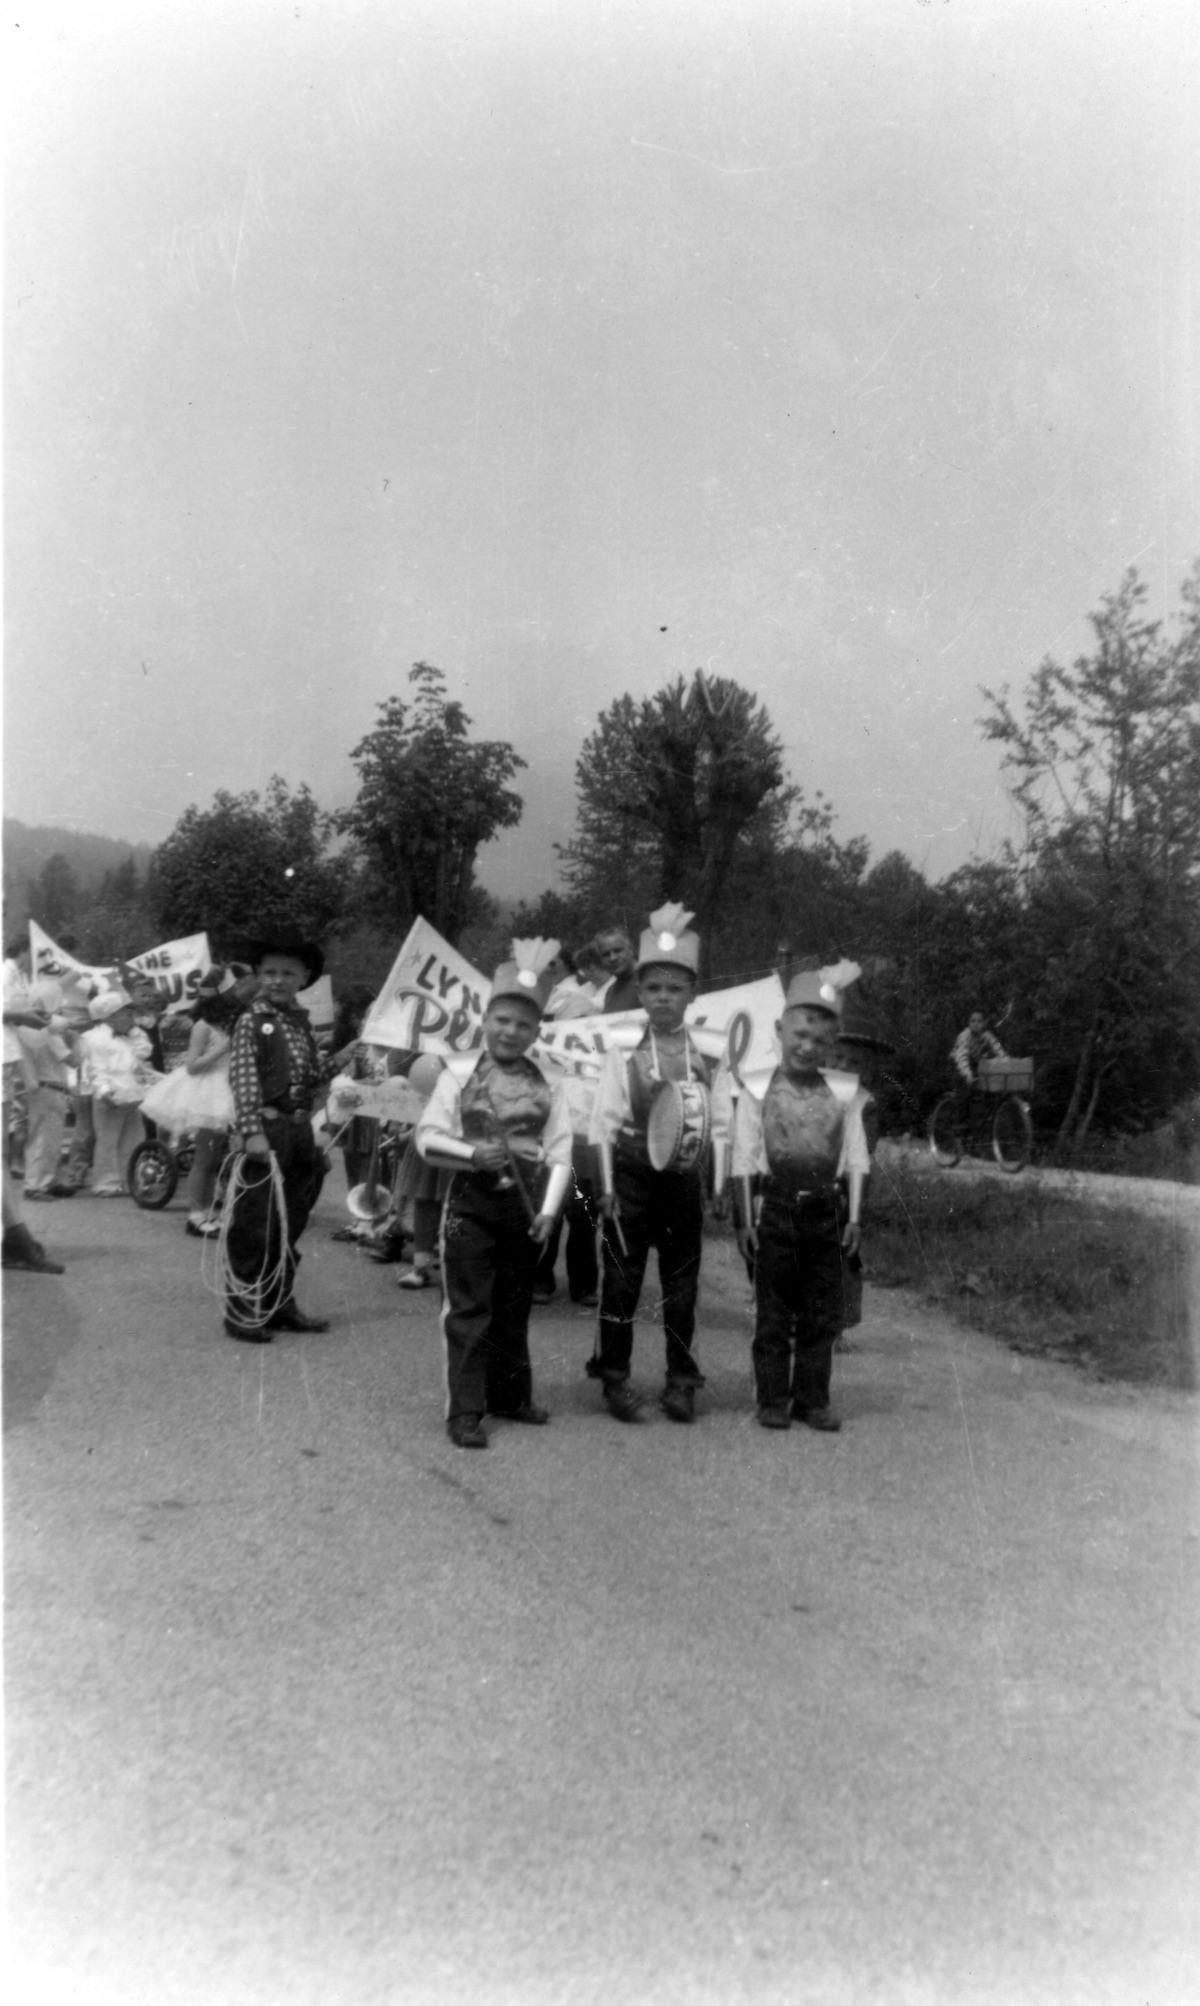 Lynn Valley Day Parade of Children, 1957. The Bearded Lady at left. Item: 11382.